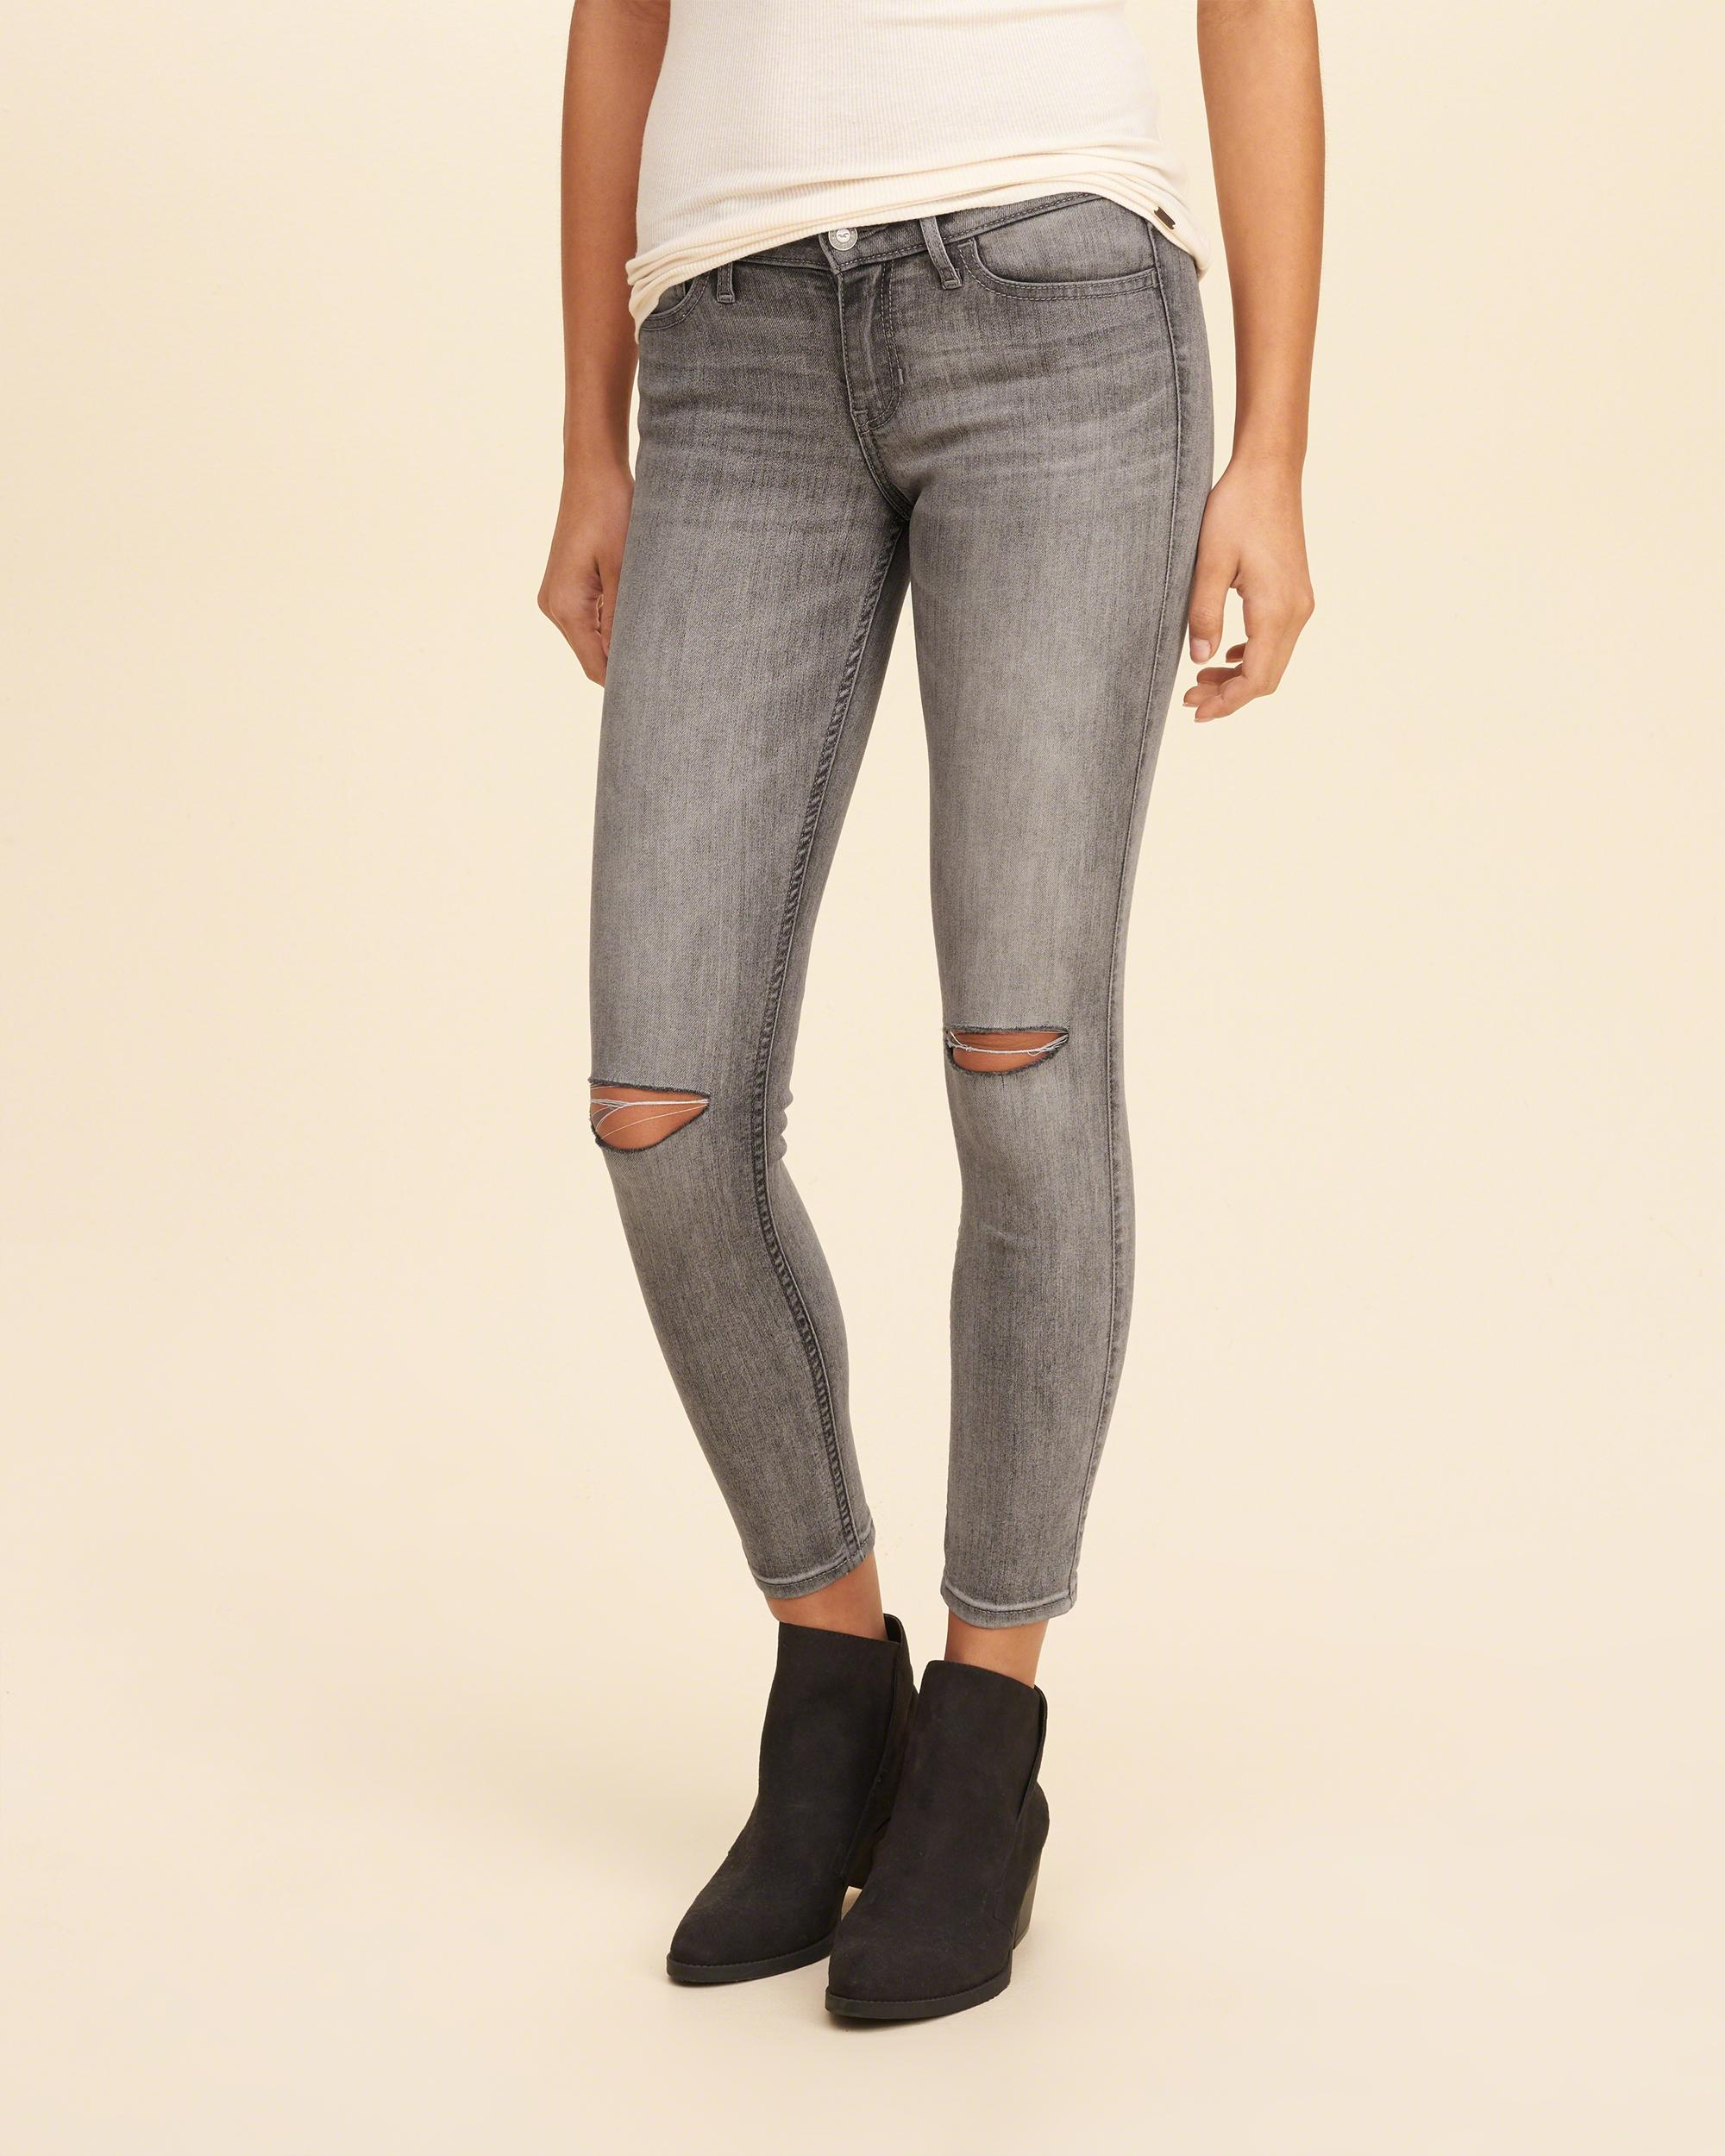 Lyst - Hollister Low-rise Crop Super Skinny Jeans in Gray